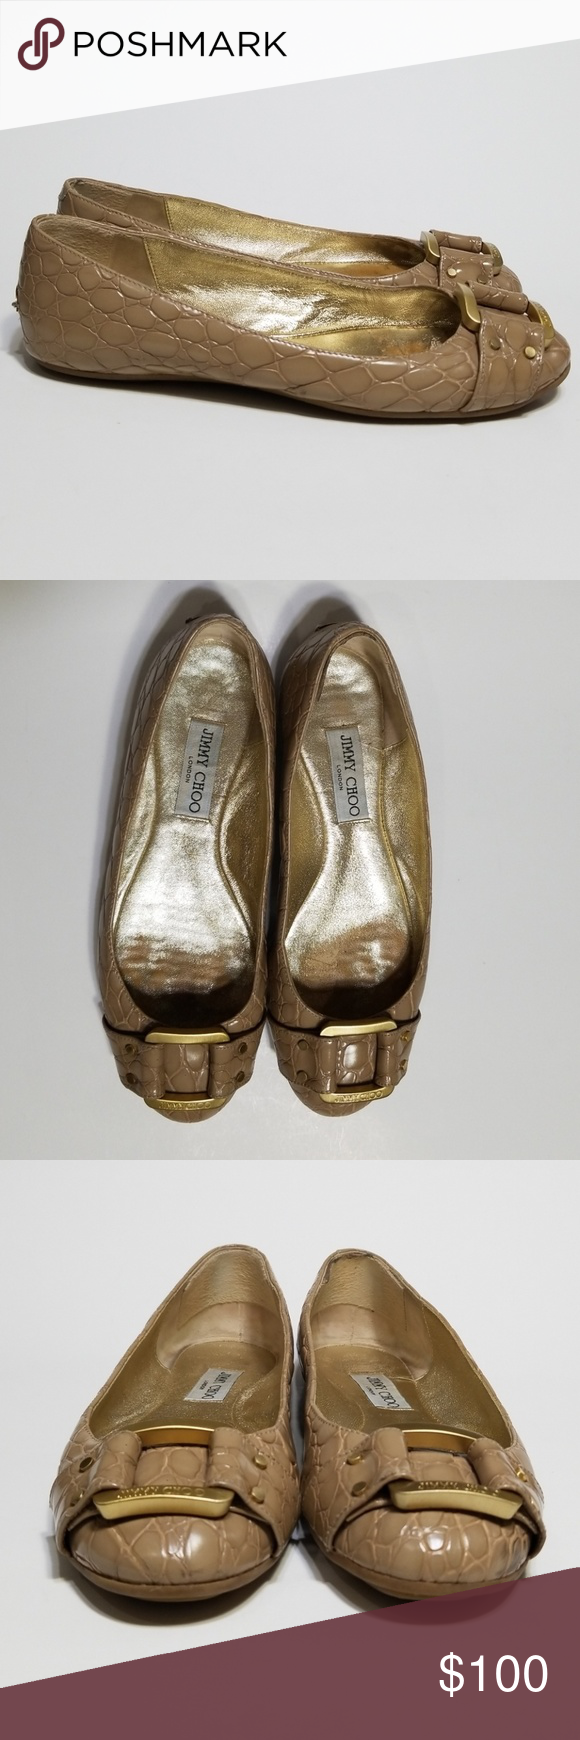 fe38ceba7810 Jimmy Choo Nude Morse Croc Rmbossed Flats 39 This is a pair of size 39 nude